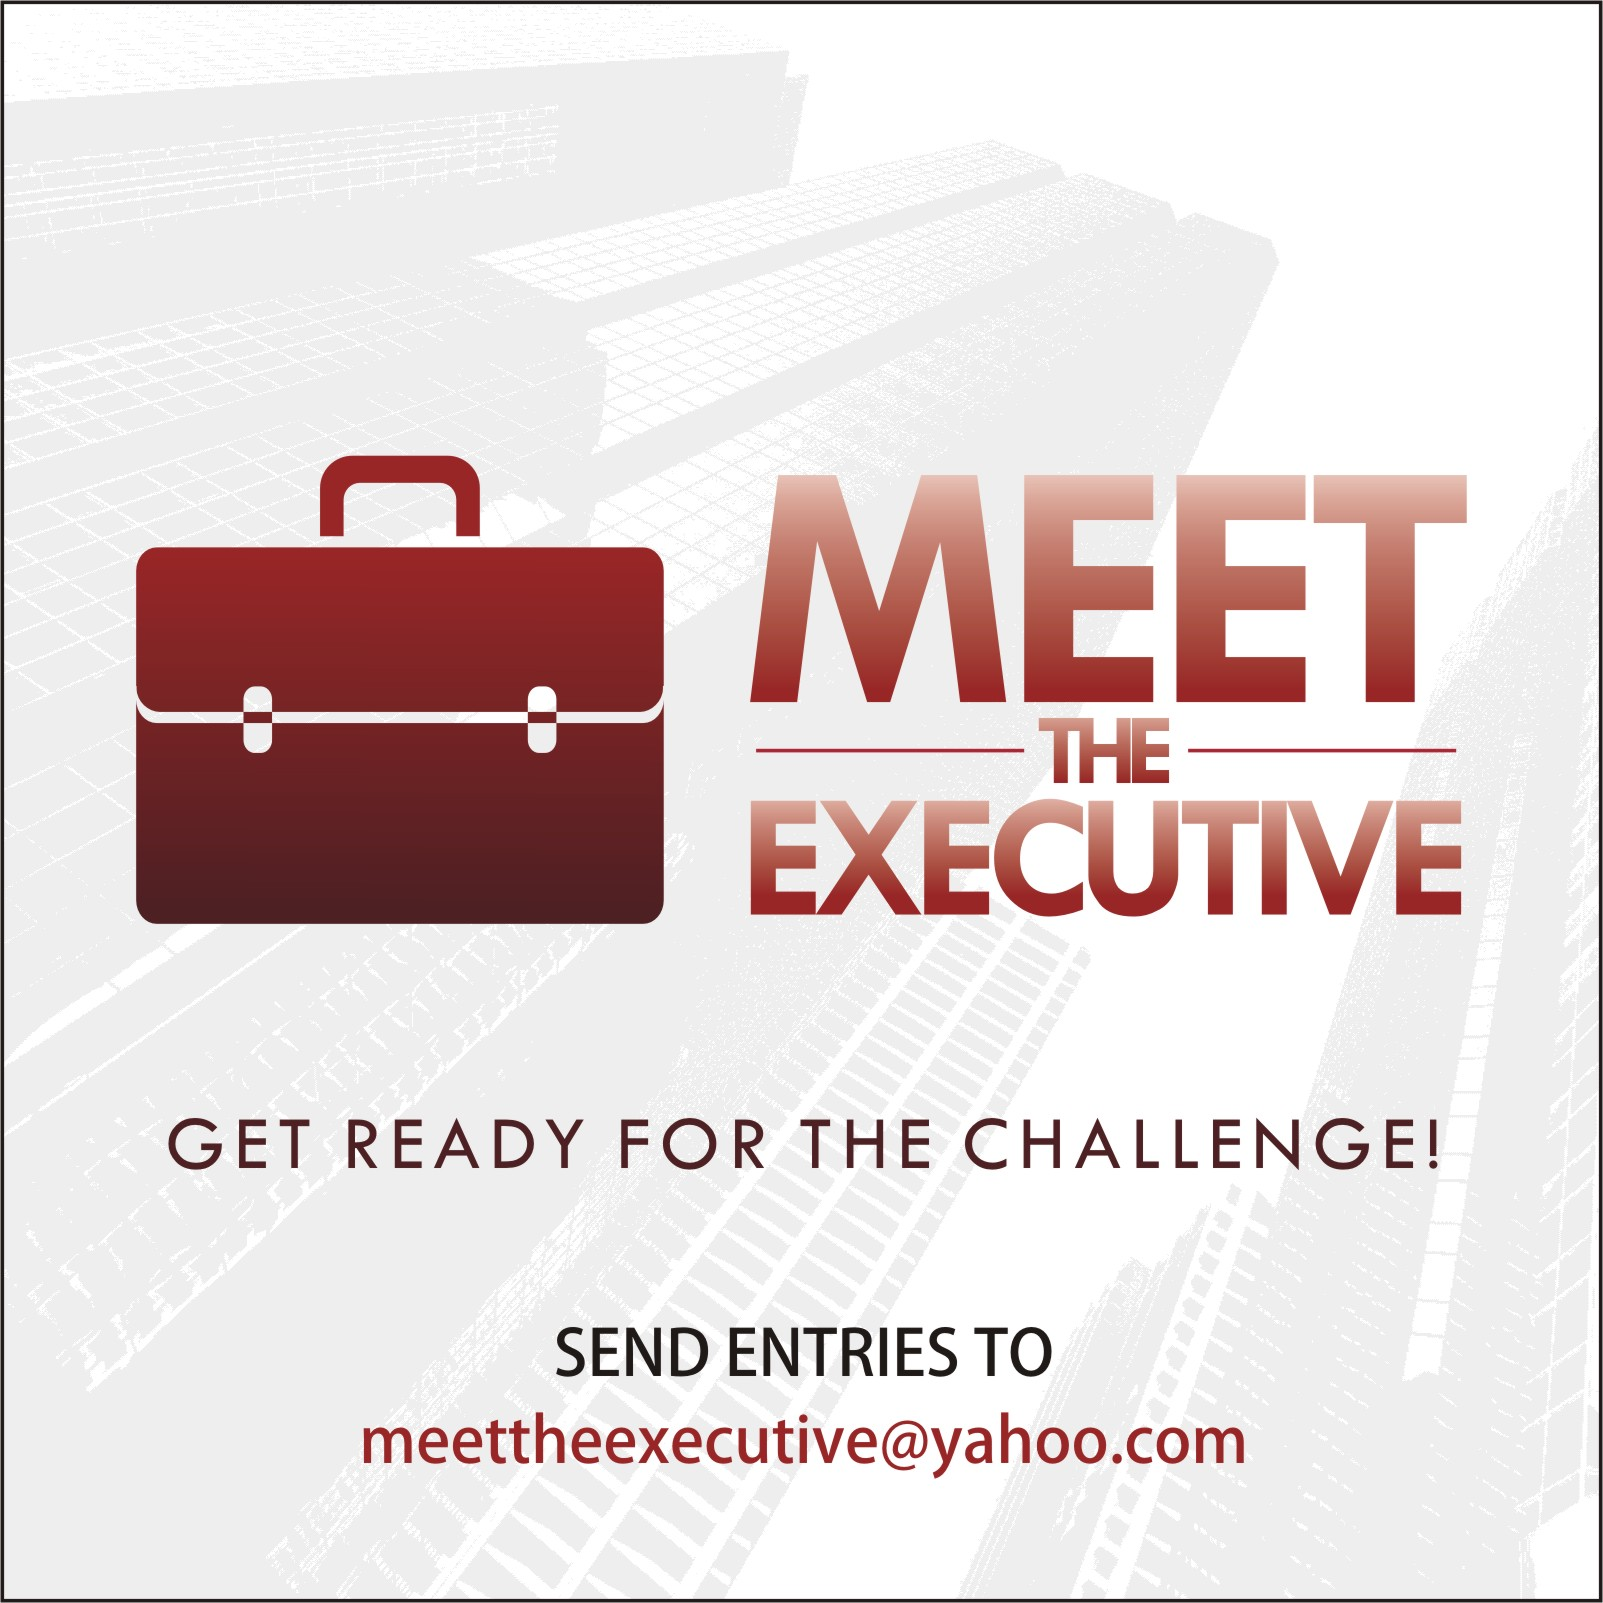 meettheexecutive